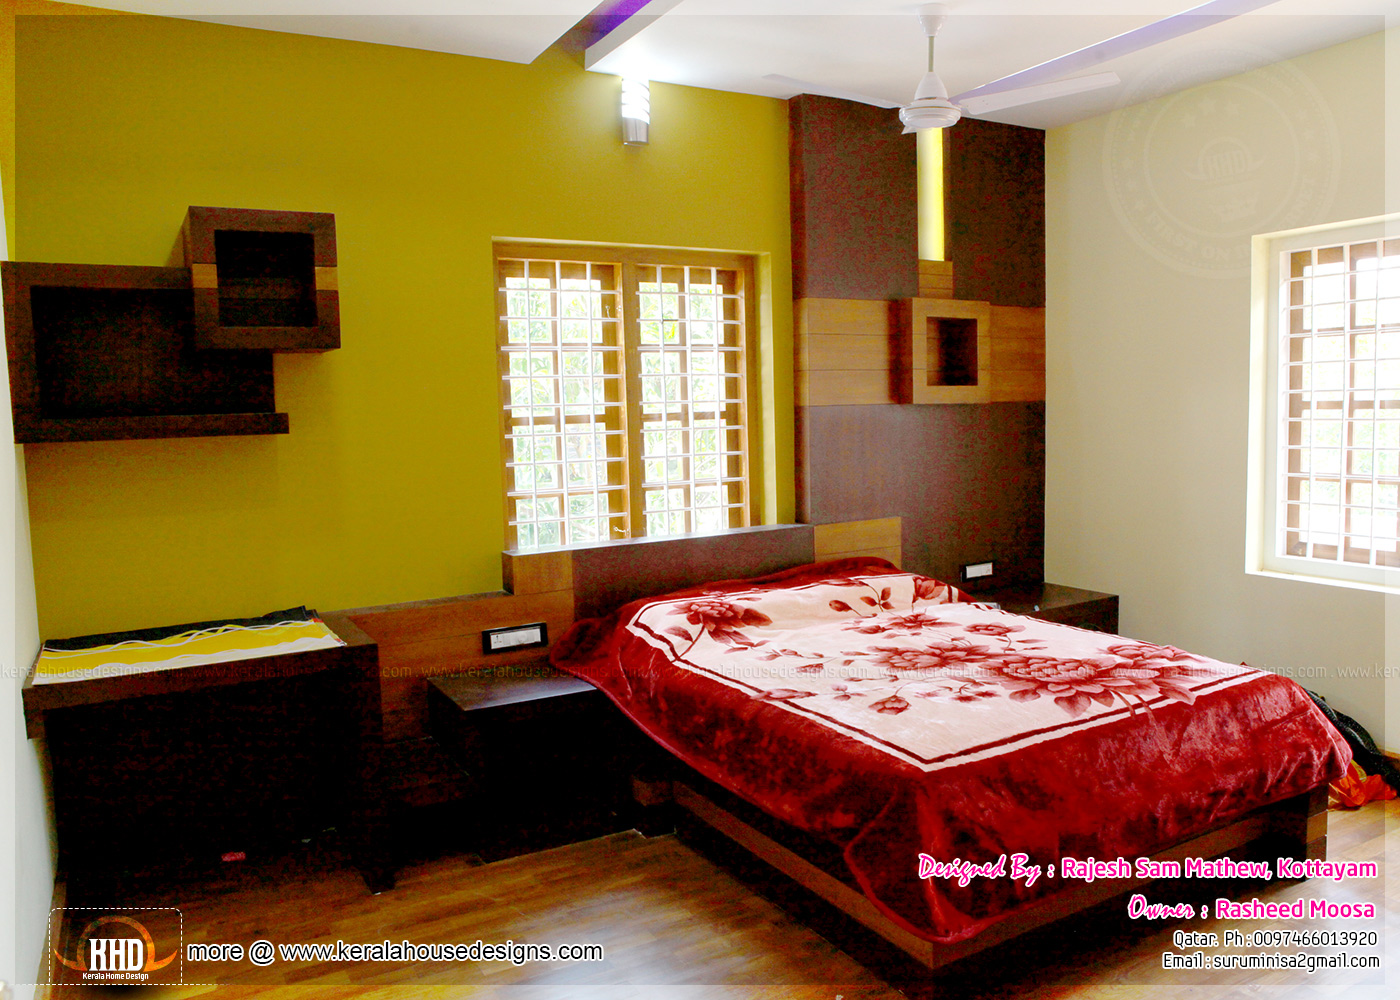 Kerala interior design with photos kerala home design for 3 bedroom house interior design